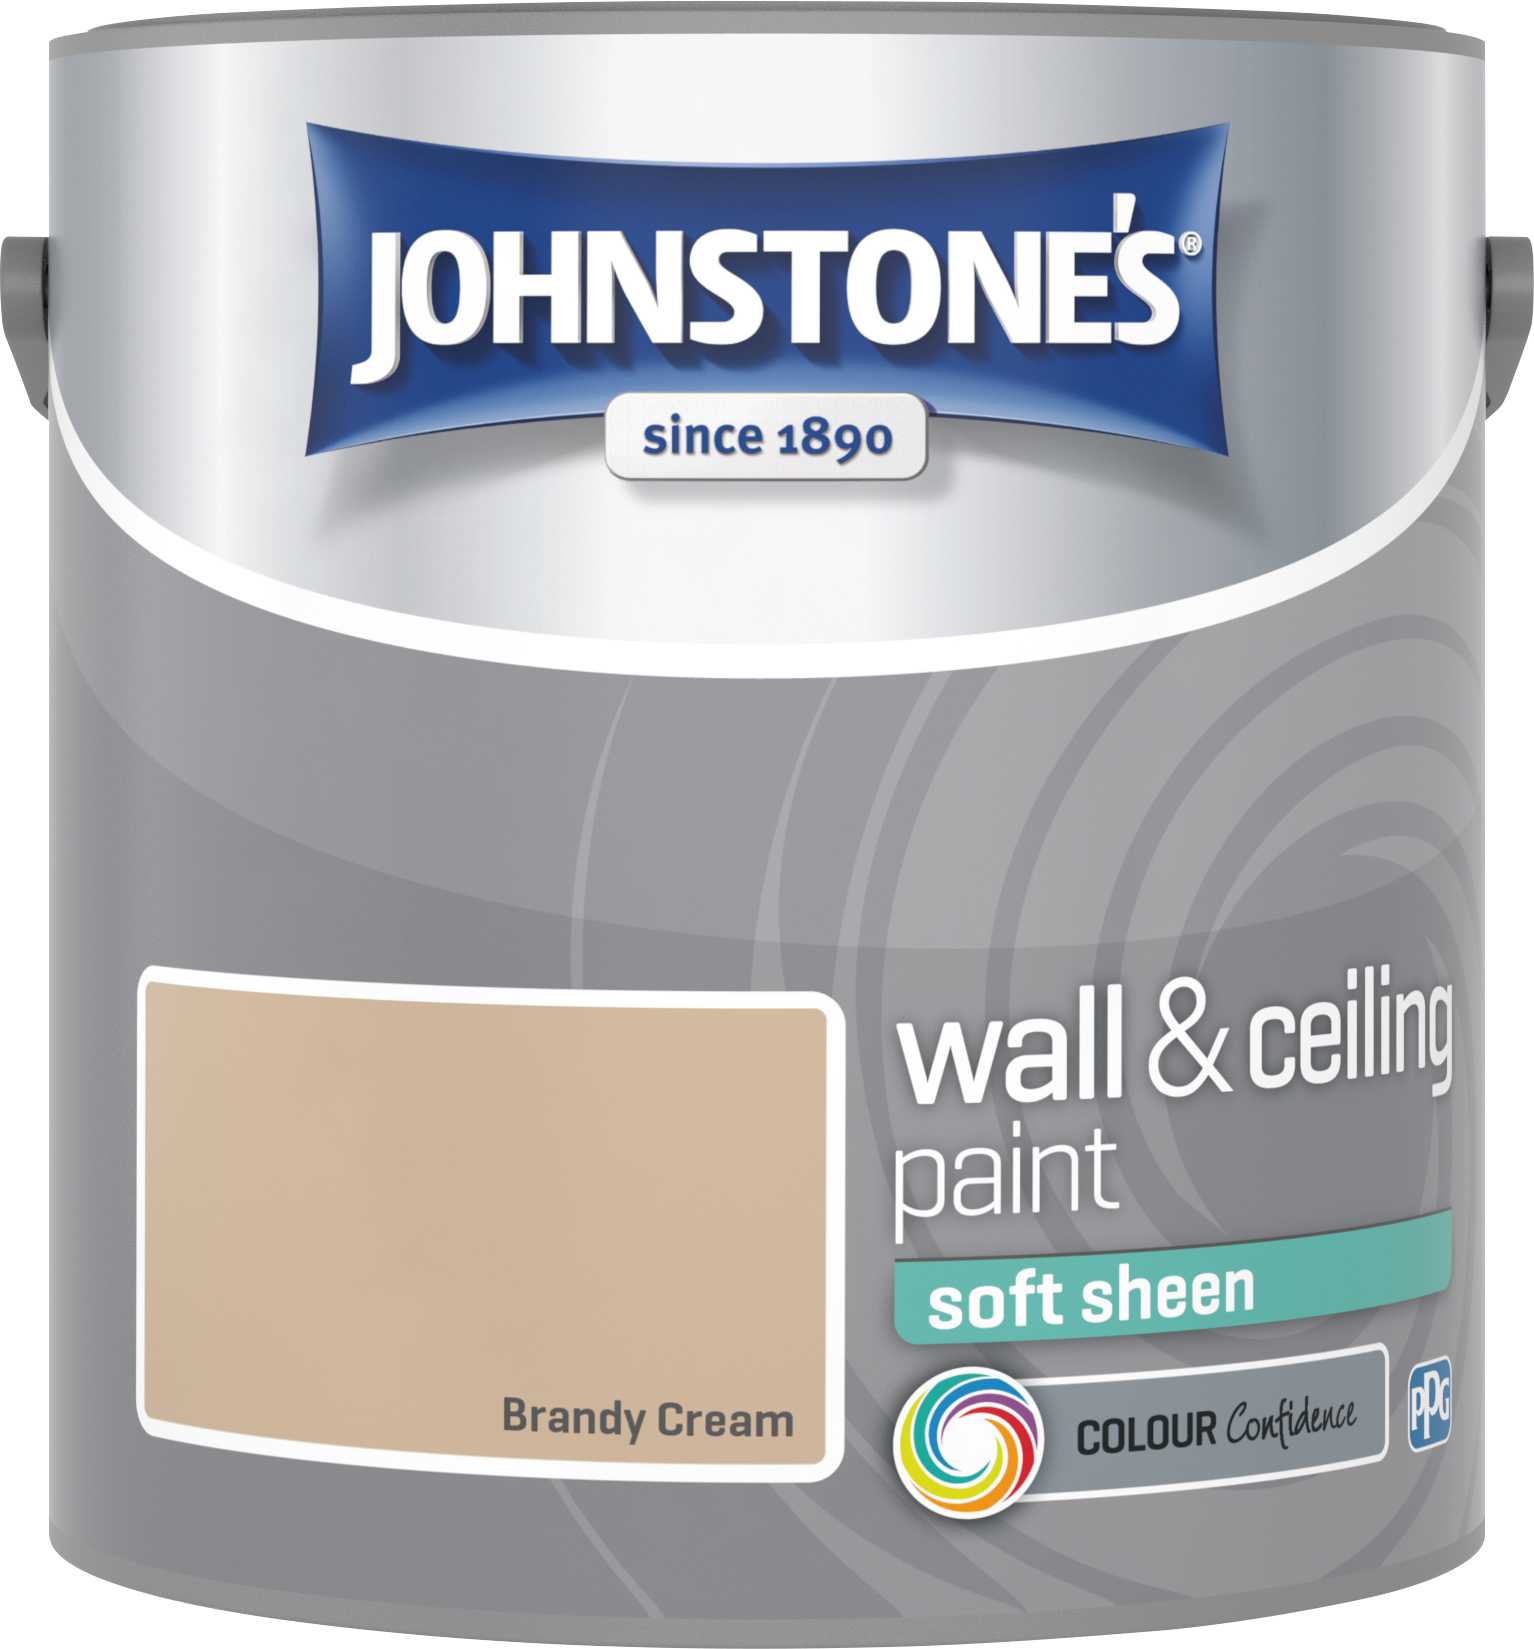 Johnstone's 304135 2.5 Litre Soft Sheen Emulsion Paint - Brandy Cream